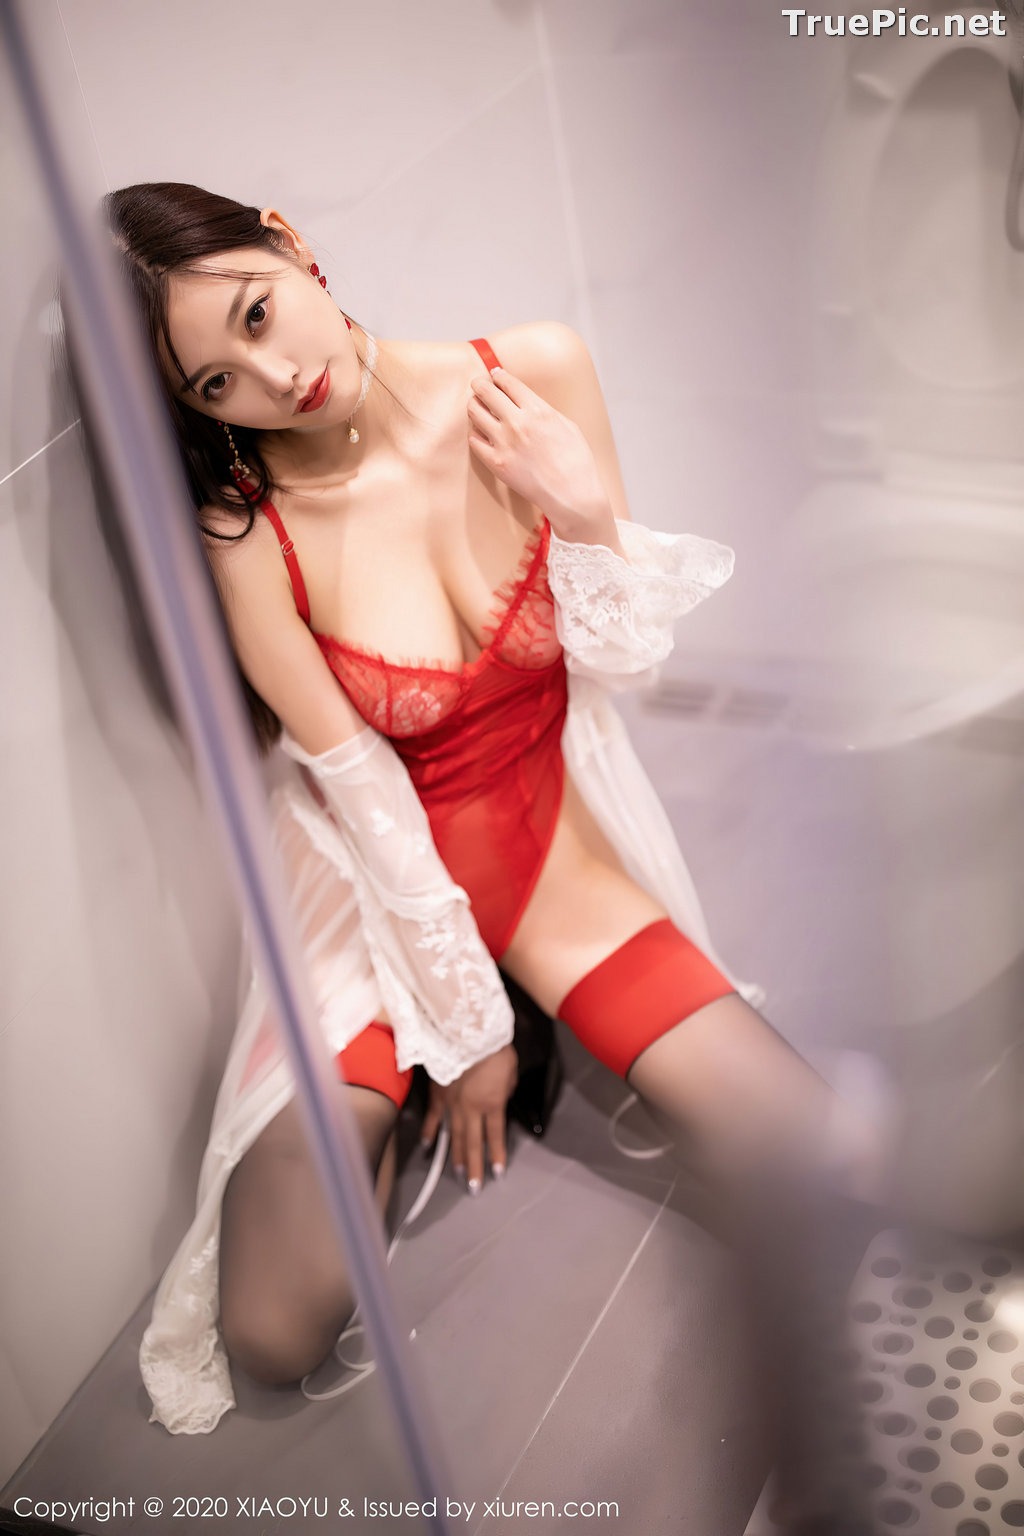 Image XiaoYu Vol.413 - Chinese Model - Yang Chen Chen (杨晨晨sugar)- Red Crystal-clear Lingerie - TruePic.net - Picture-11